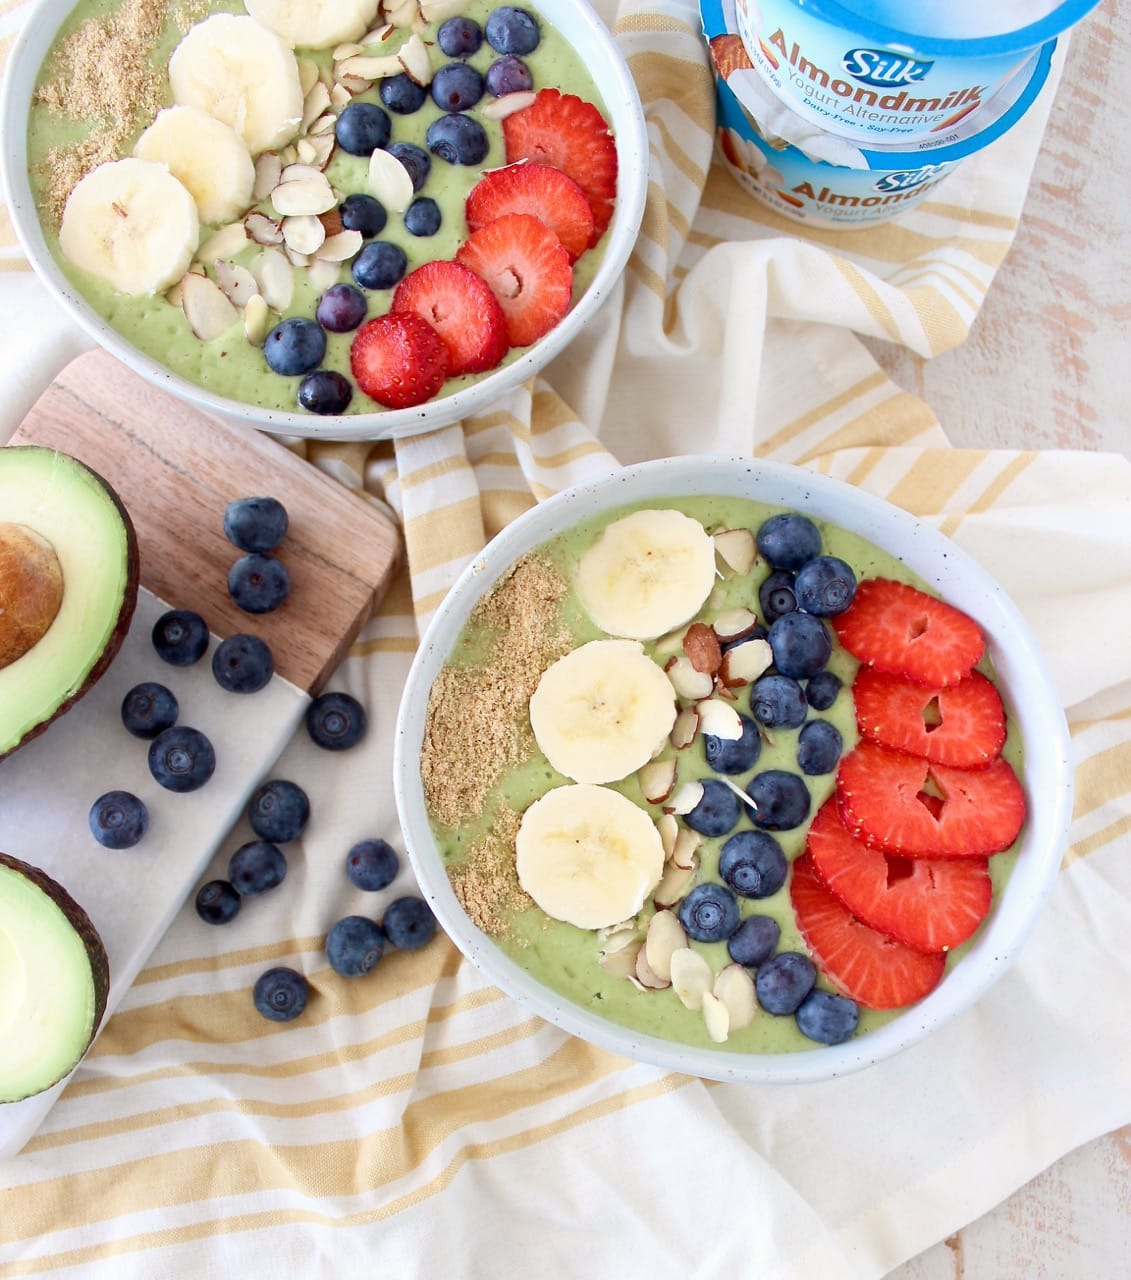 Fresh avocados, bananas and spinach are blended up with almond milk yogurt and coconut water in this delicious, vegan avocado smoothie bowl recipe!